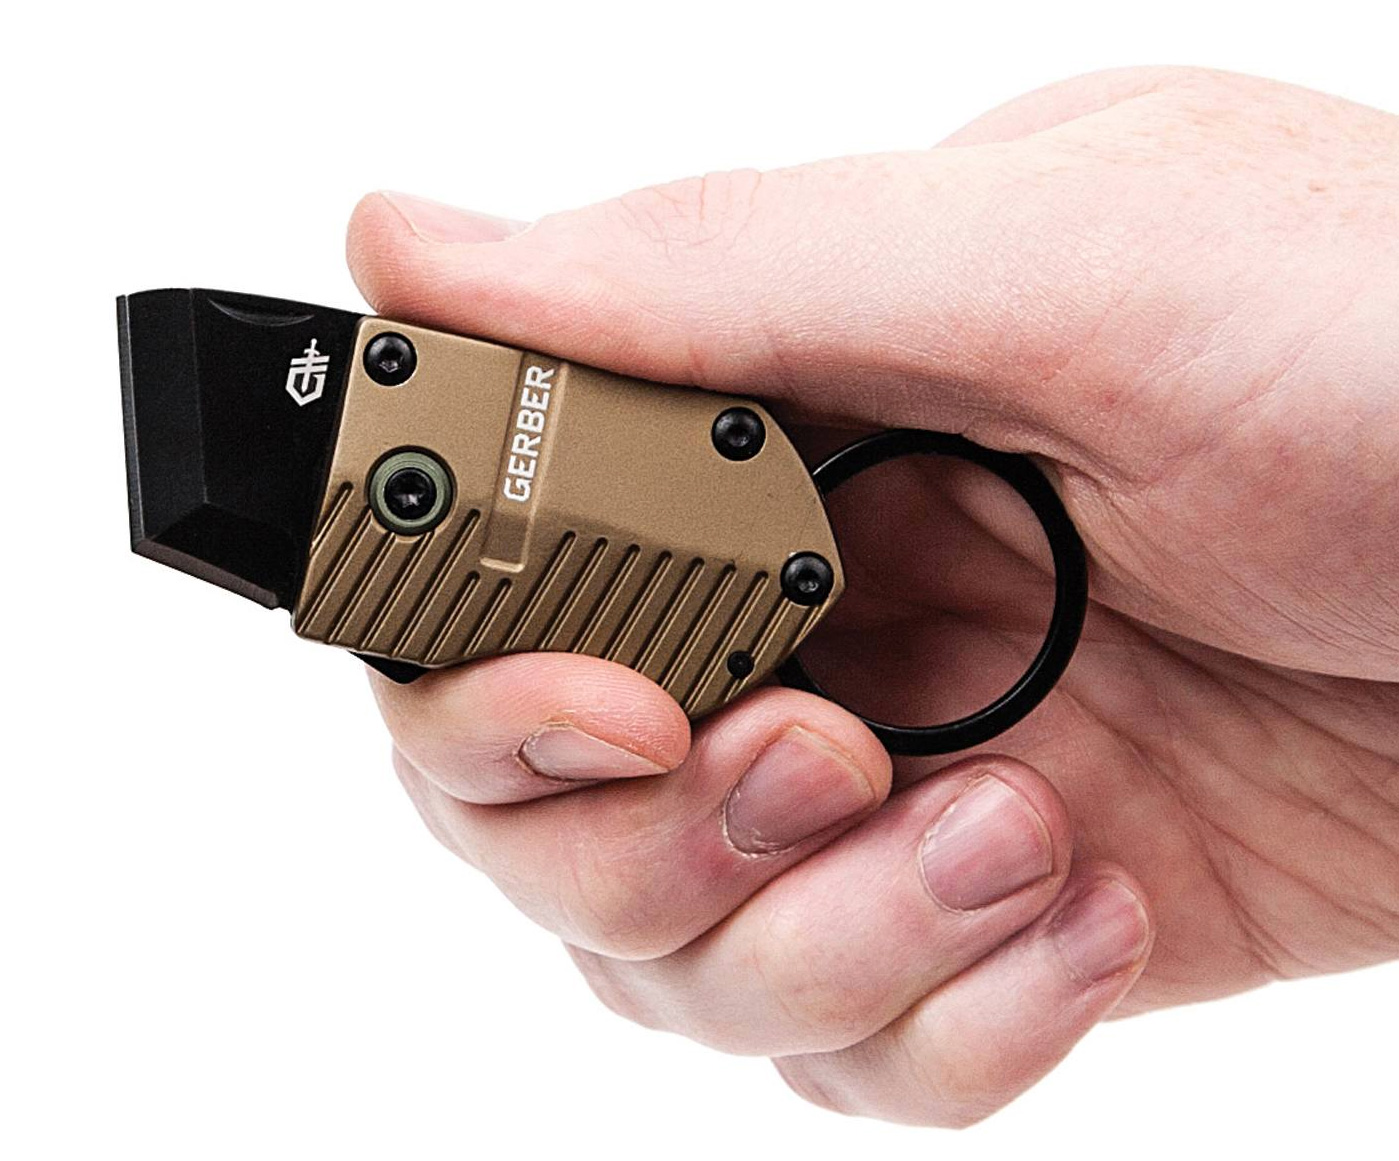 Gerber's Keynote Micro-Knife is a Solid EDC Blade at werd.com